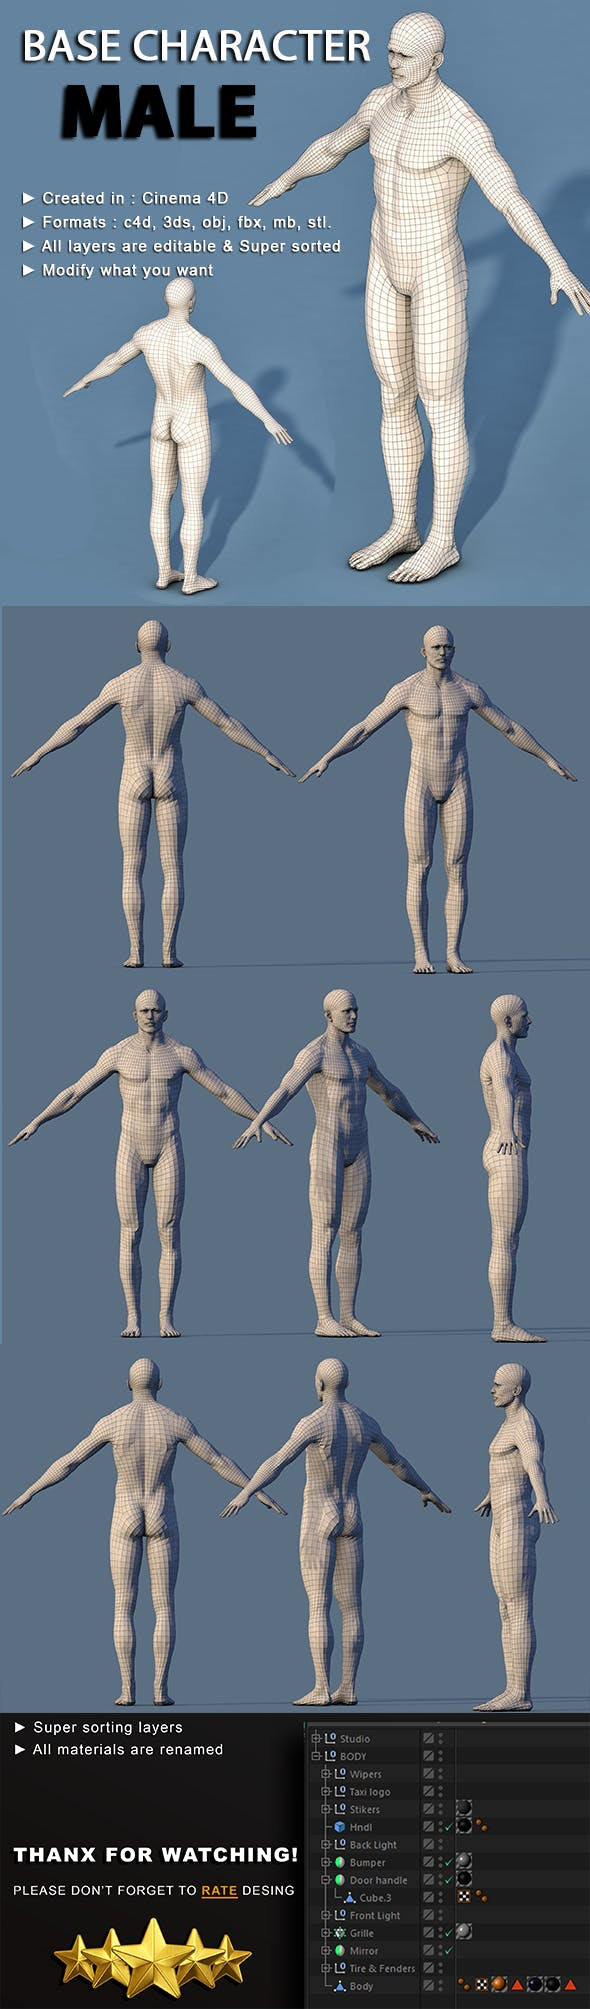 Low Poly Base Character Male - 3DOcean Item for Sale